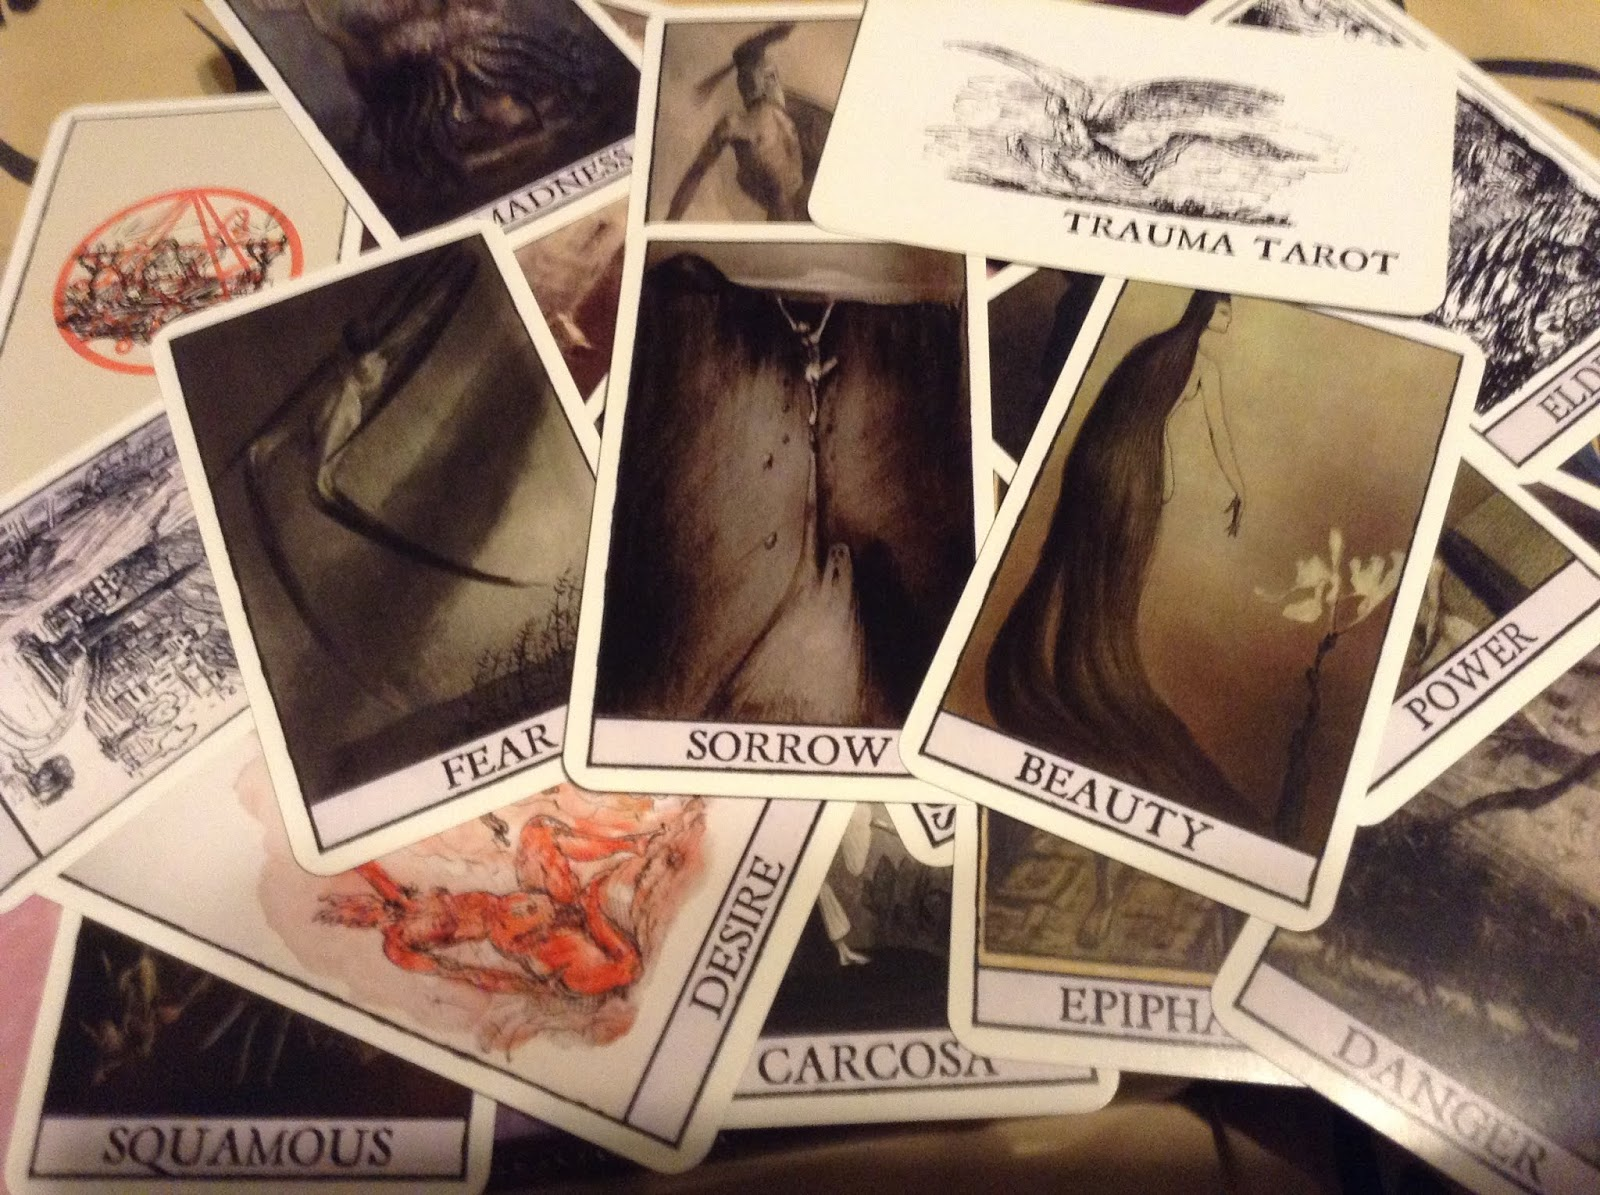 the trauma tarot is the official divination deck of the first united church of cthulhu draw a card that is what is weighing on your subconscious mind